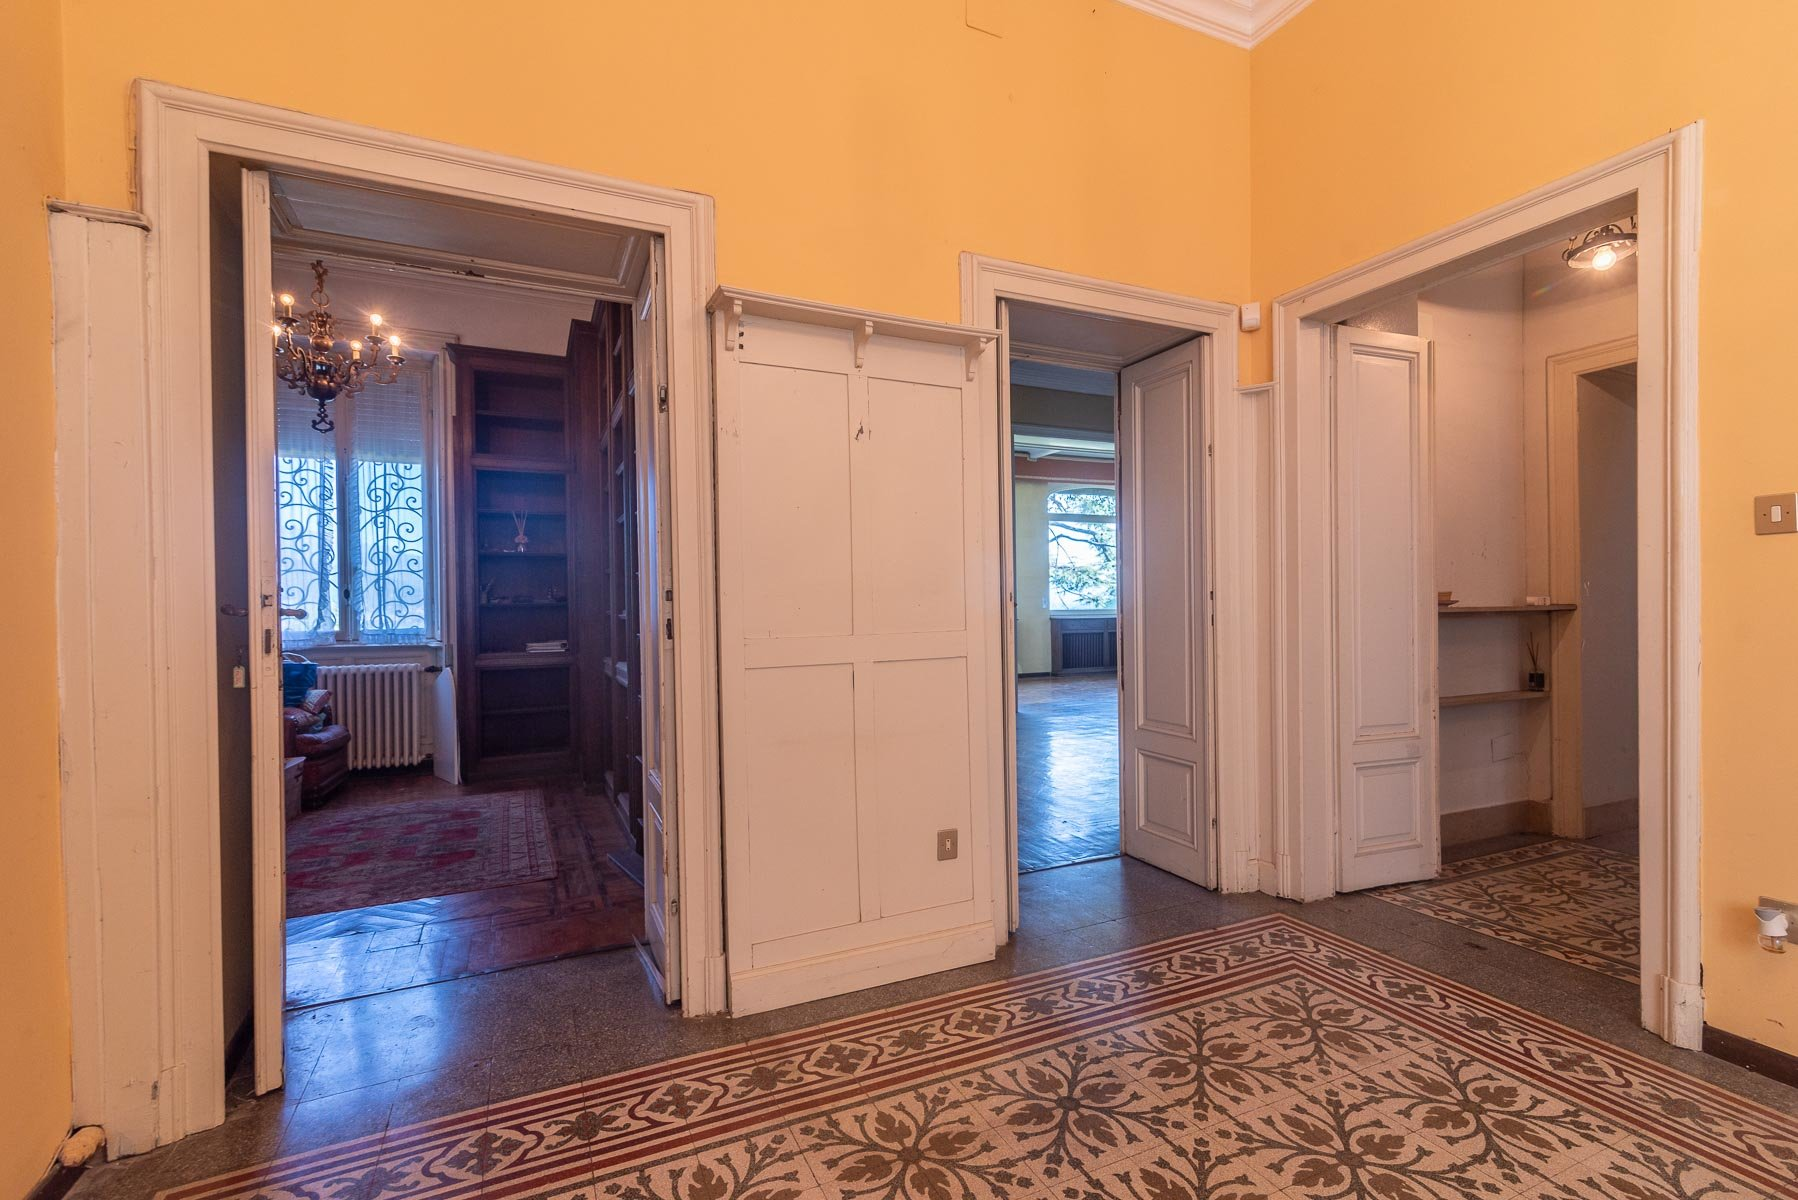 Villa liberty in vendita a Stresa - interno